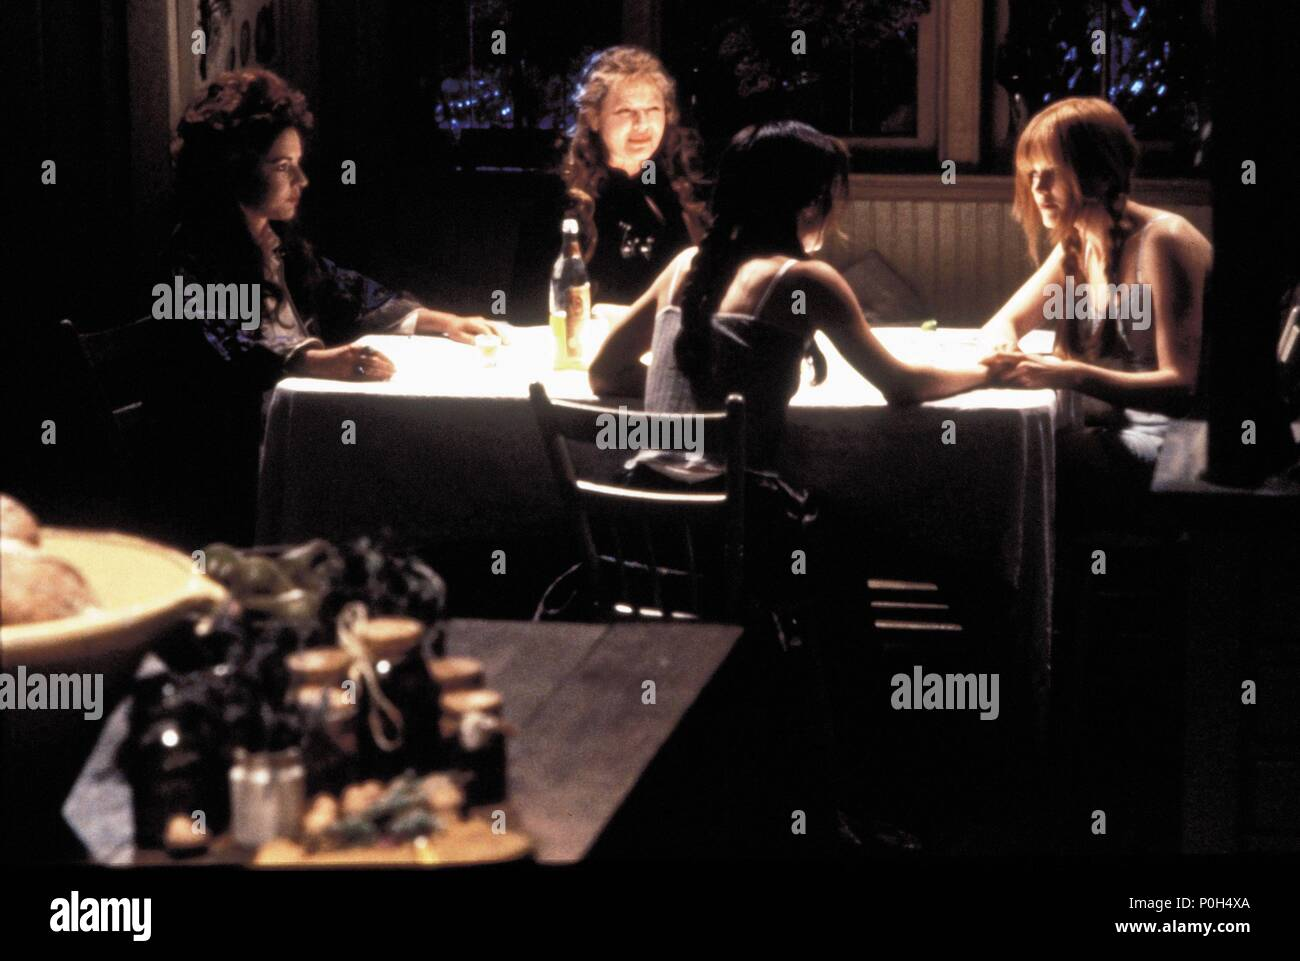 Original Film Title: PRACTICAL MAGIC.  English Title: PRACTICAL MAGIC.  Film Director: GRIFFIN DUNNE.  Year: 1998.  Stars: STOCKARD CHANNING; NICOLE KIDMAN; SANDRA BULLOCK; DIANNE WIEST. Credit: WARNER BROTHERS / TENNER, SUZANNE / Album - Stock Image